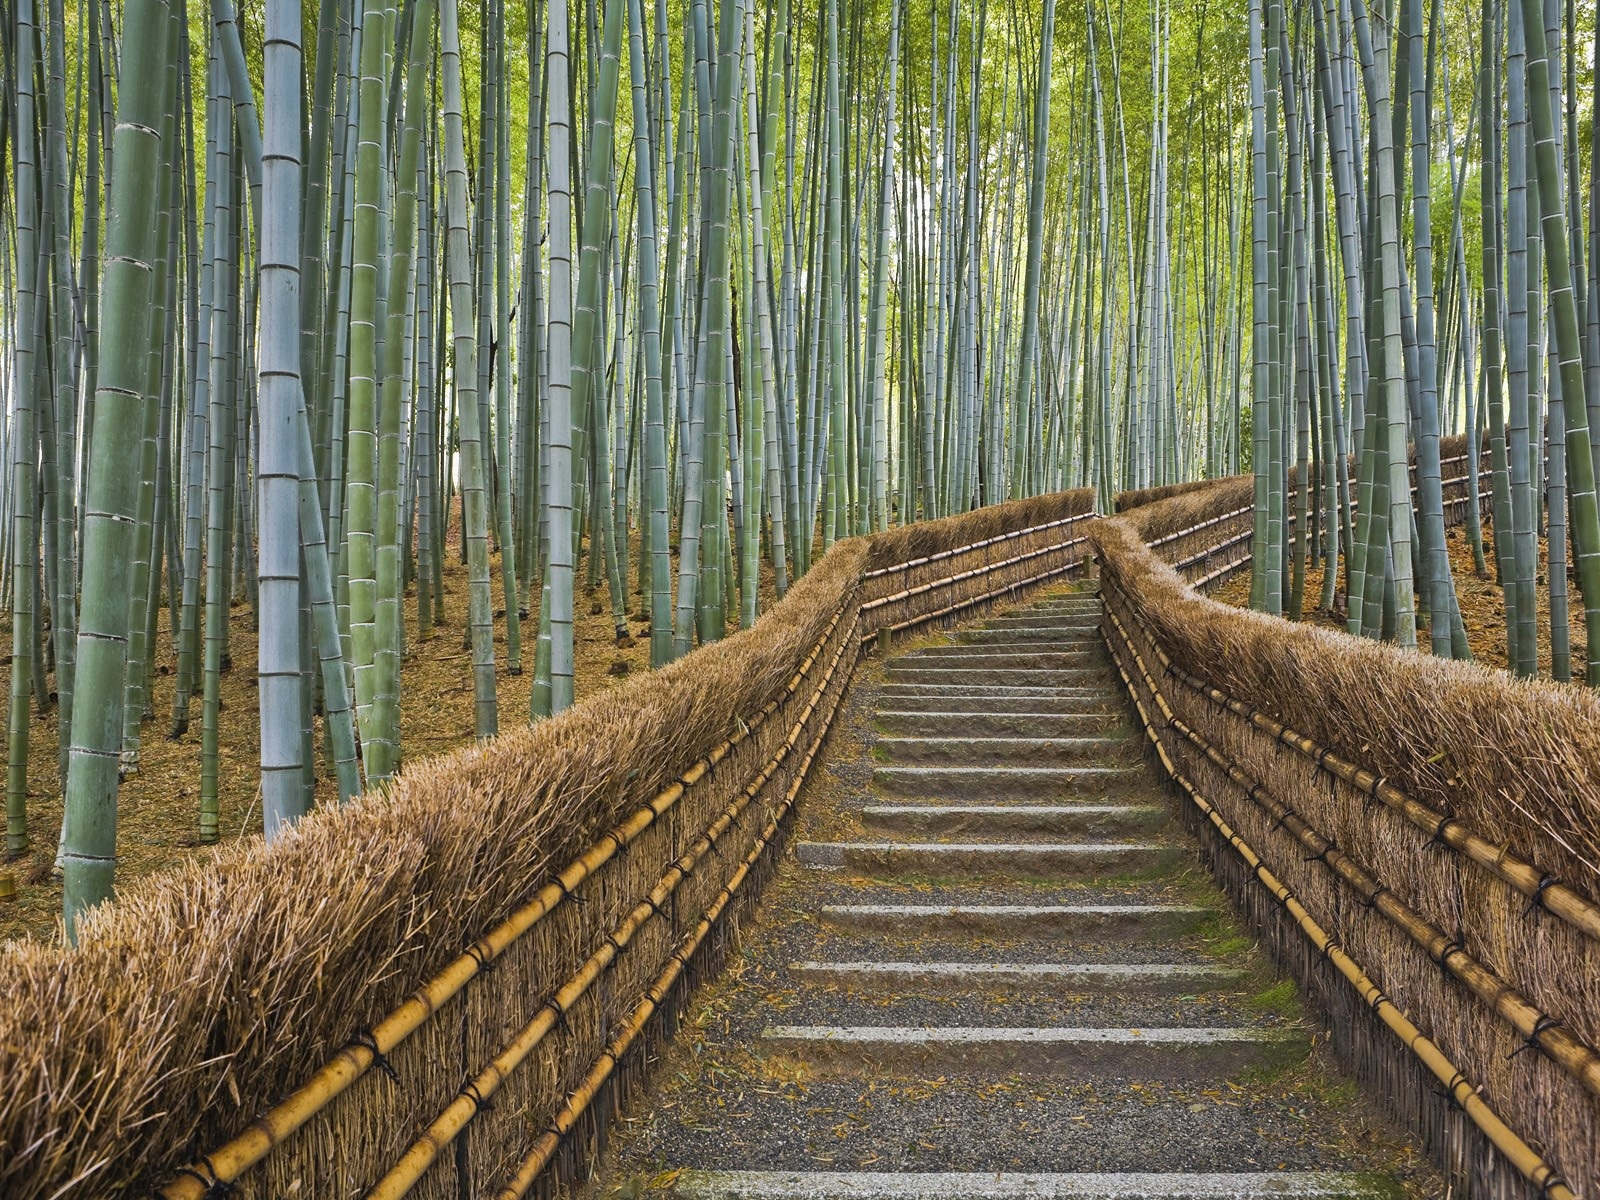 Bamboo Forest Wallpapers Bamboo Forest Stock Photos